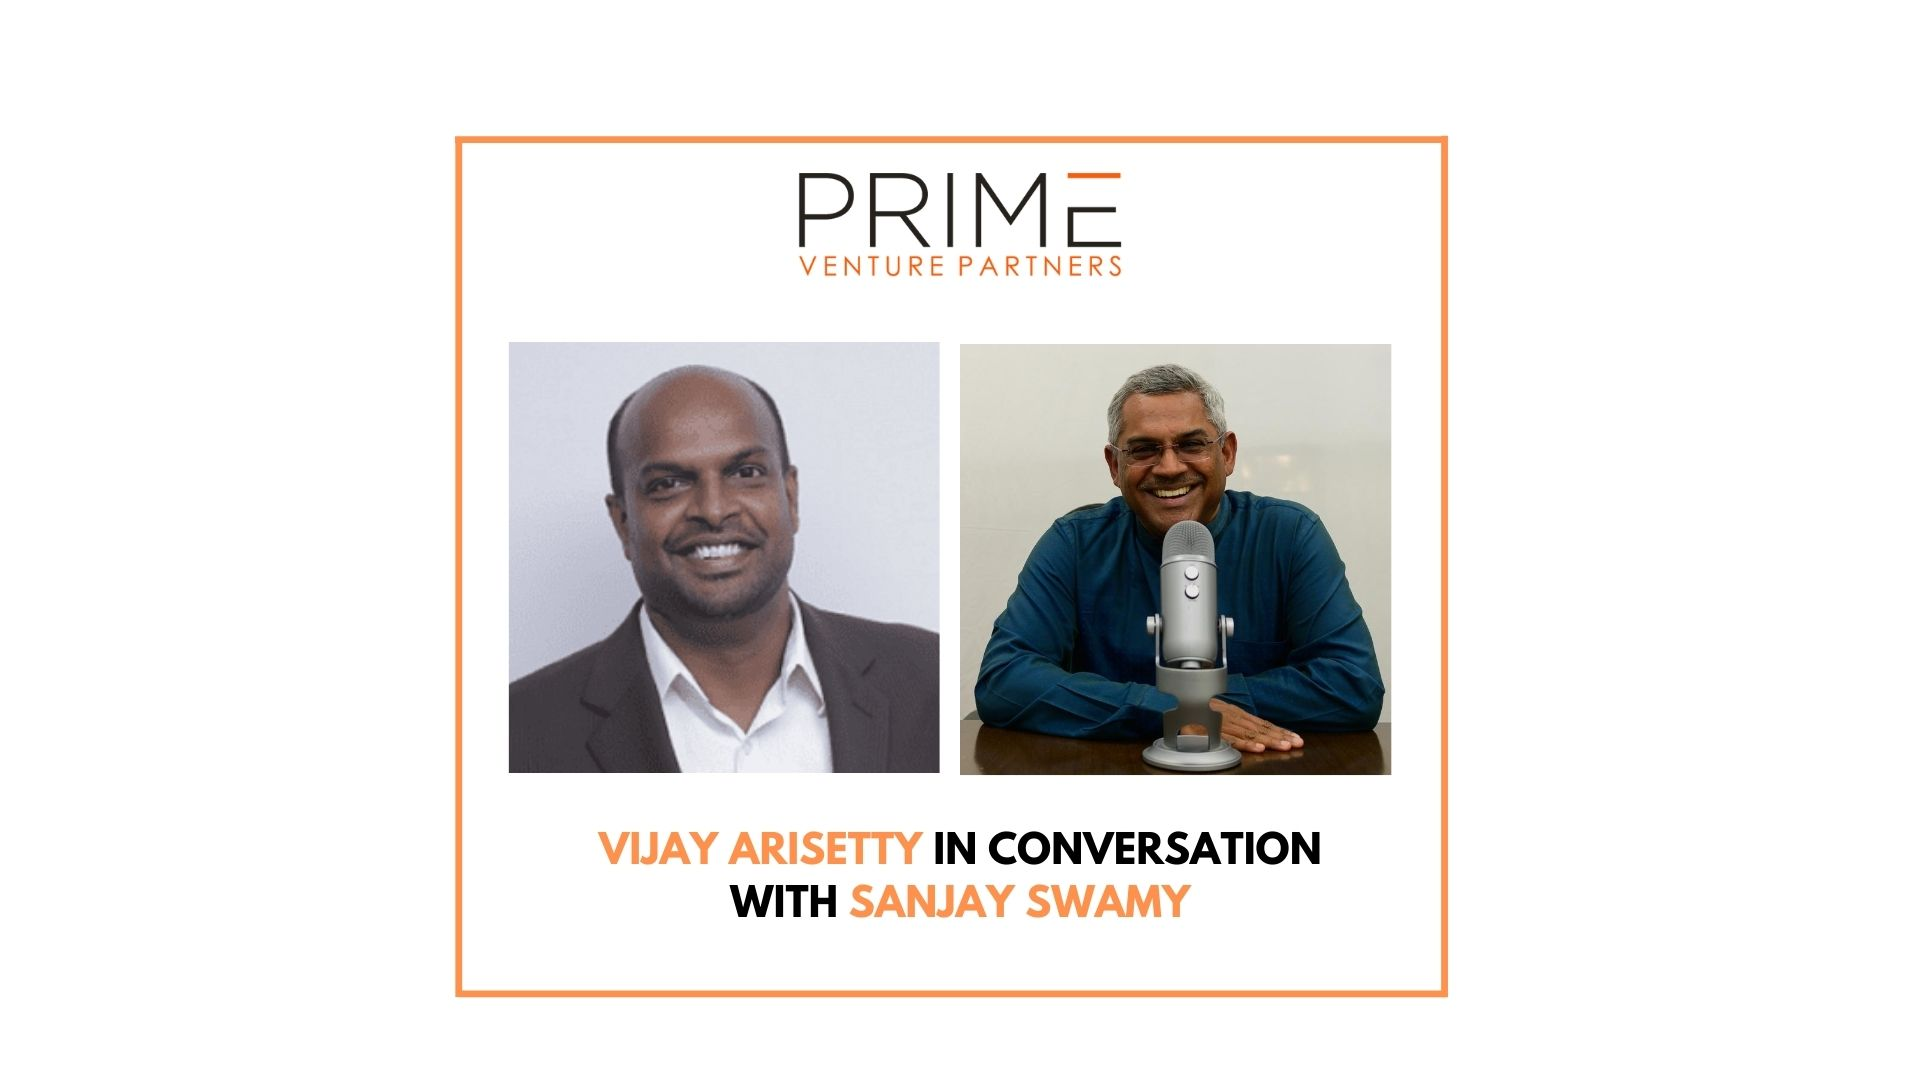 A graphic with guest(Vijay Arisetty) and host's (Sanjay Swamy) name and image.